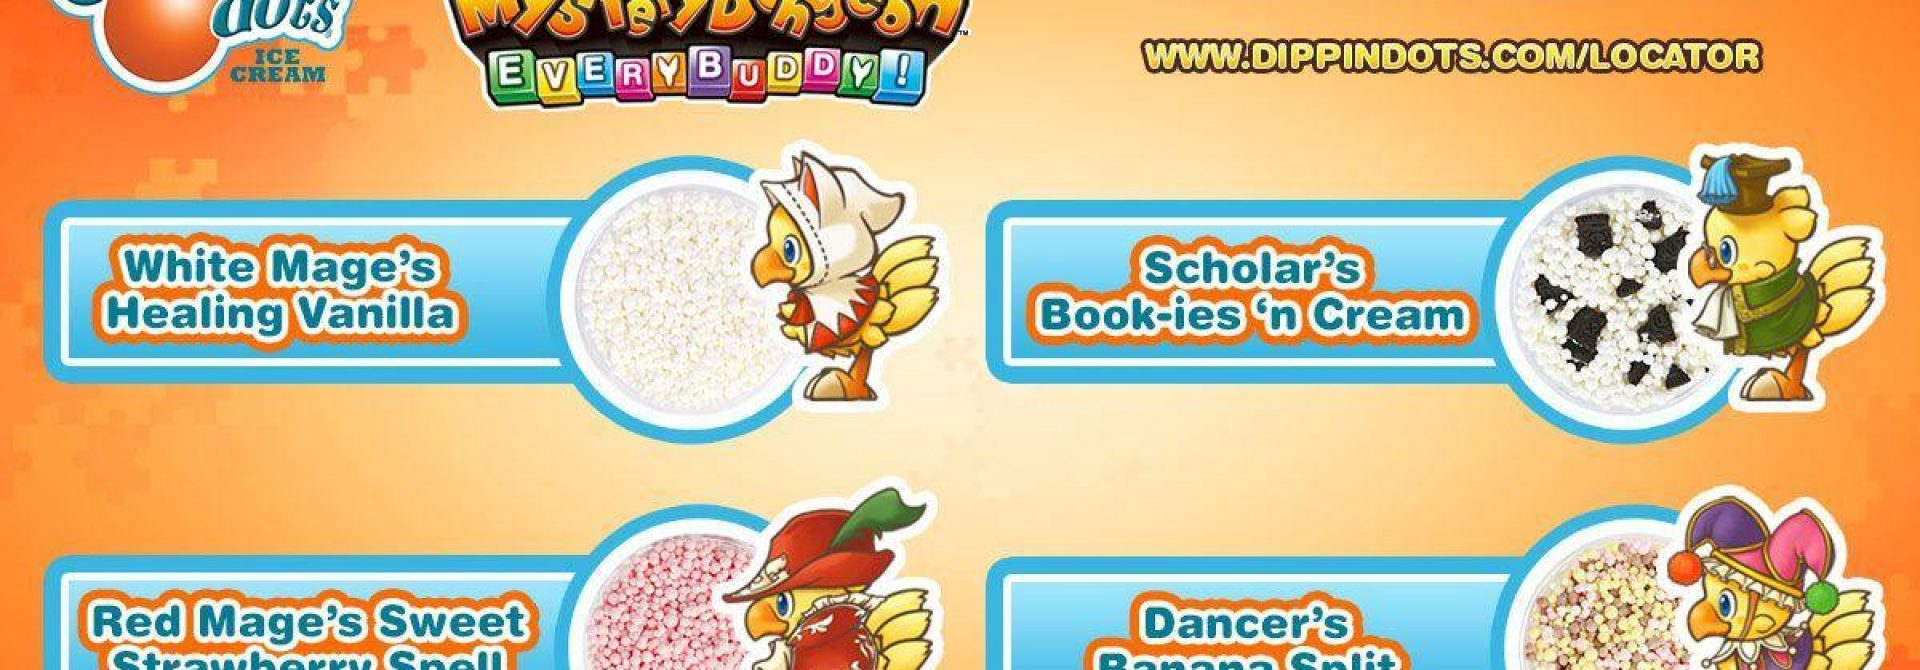 Chobobo-Themed Sweepstakes Coming To Dippin' Dots